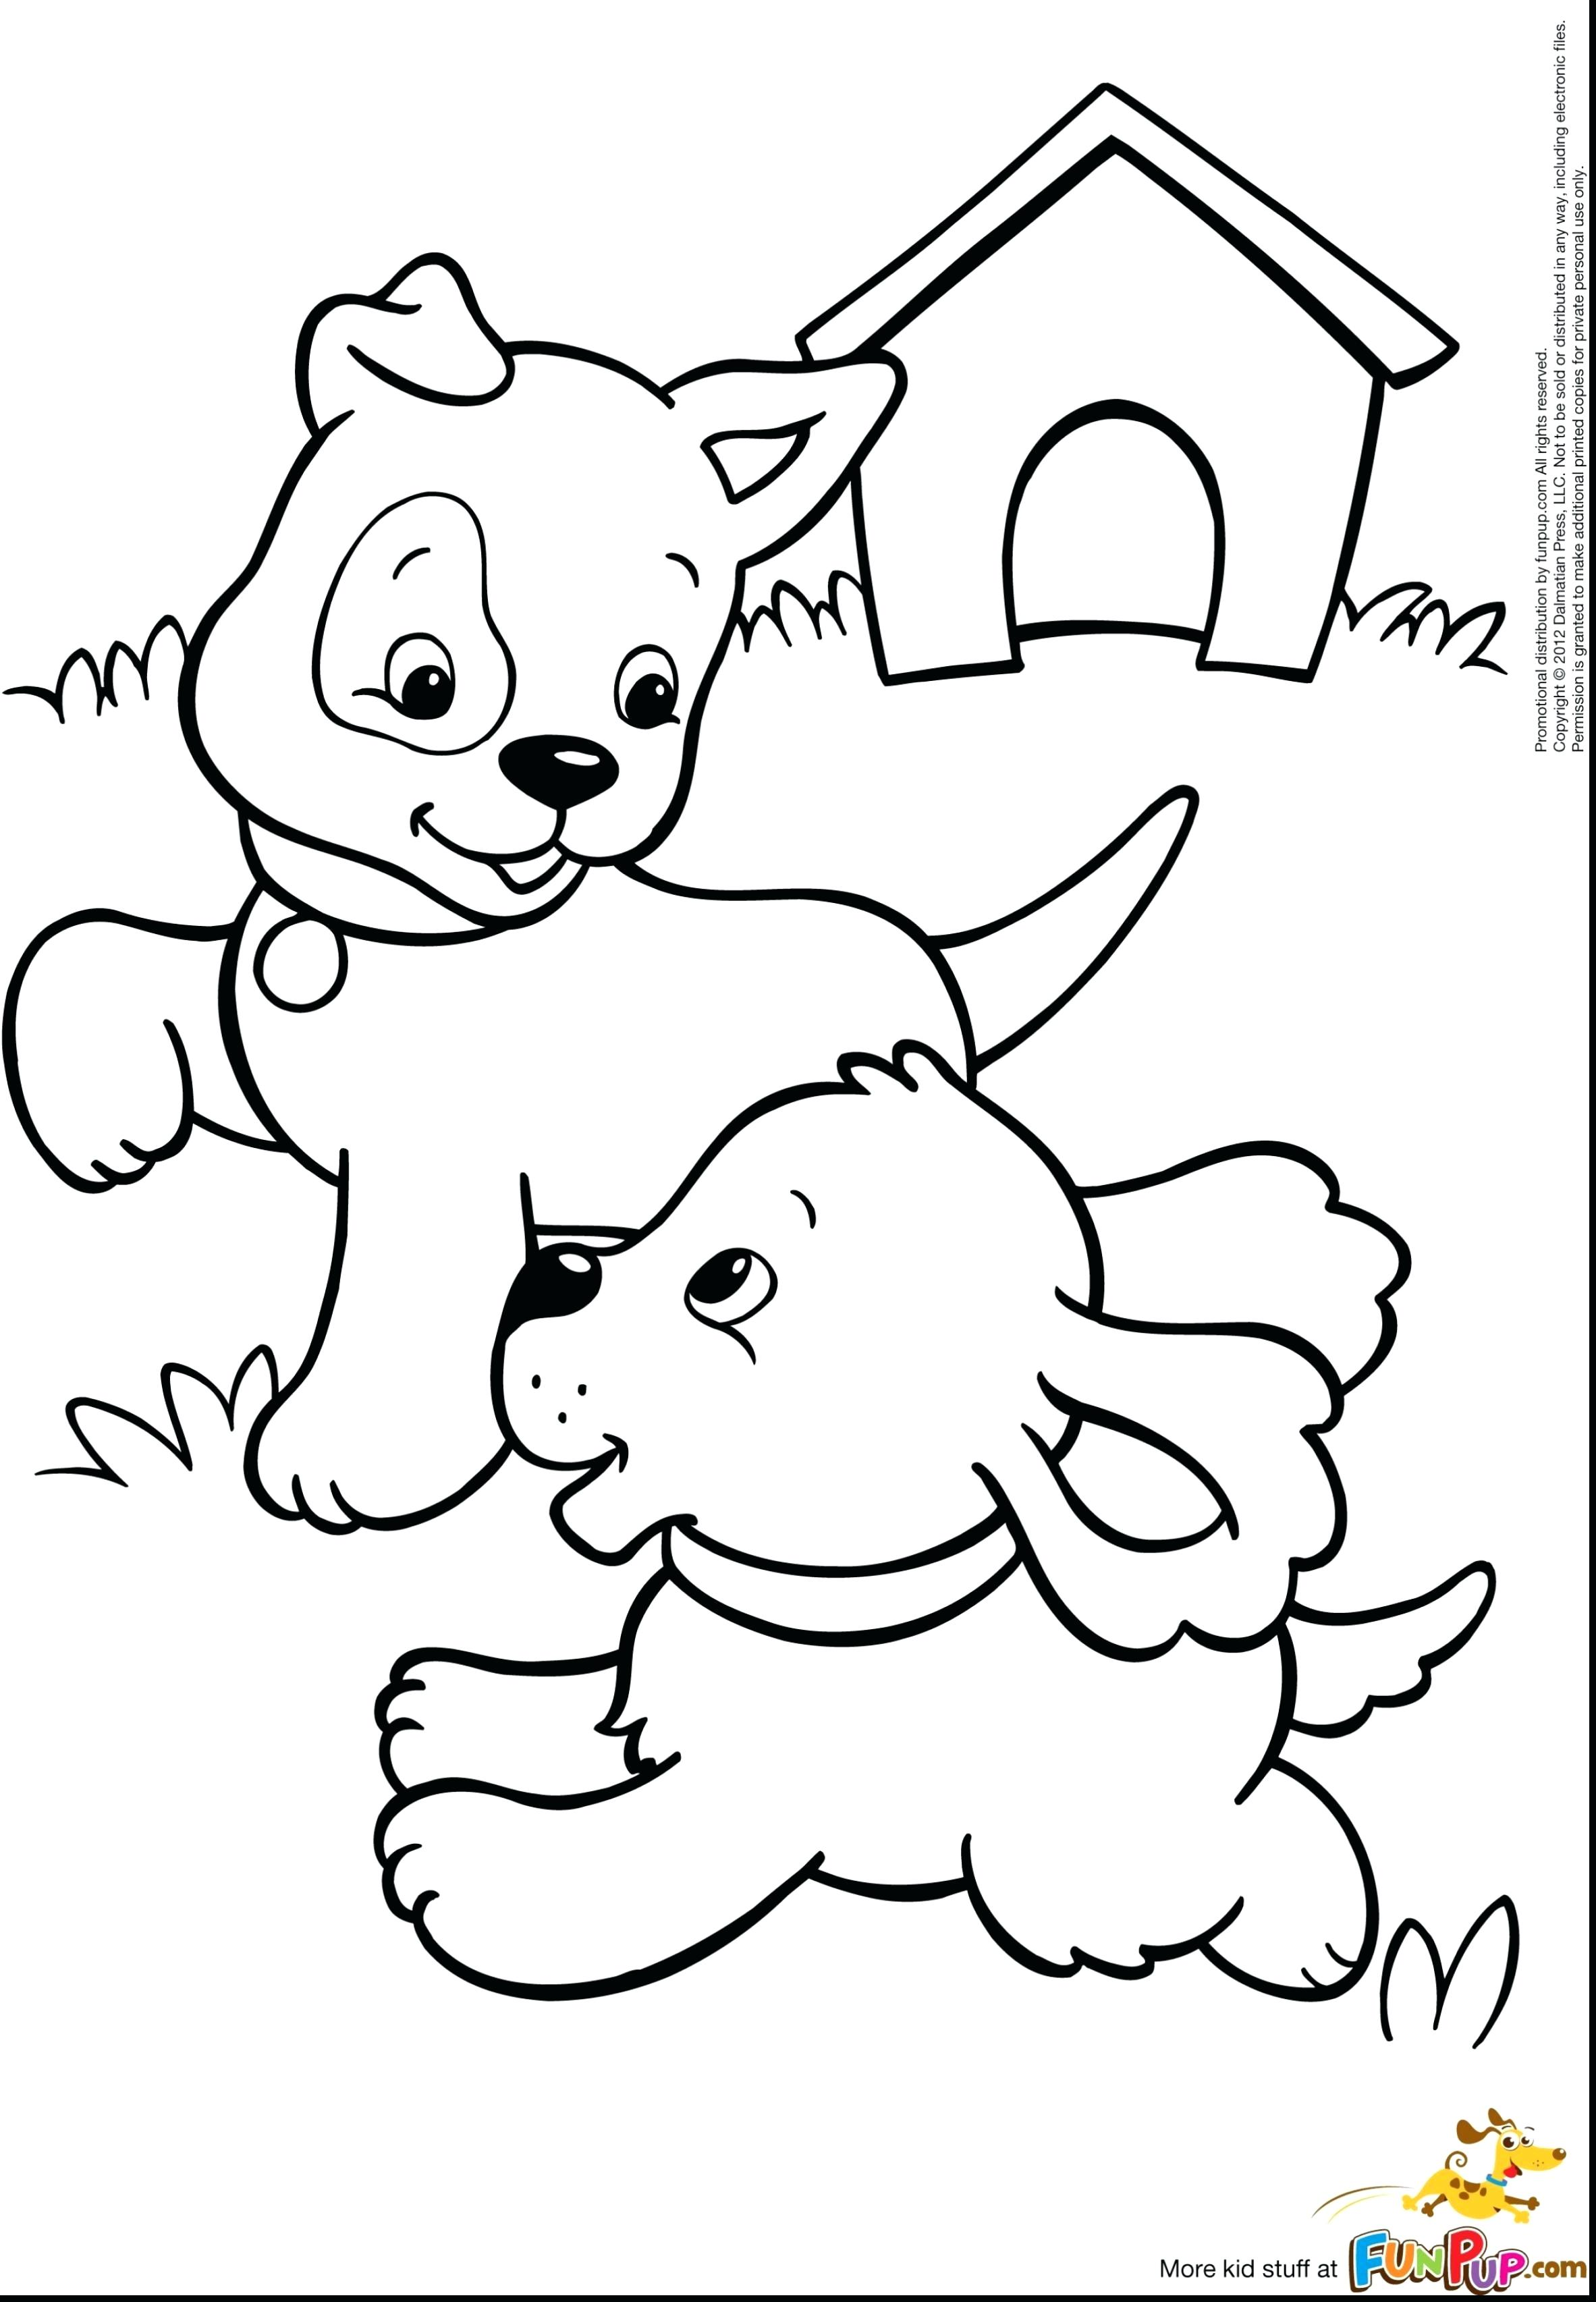 2365x3411 Johnny Test Coloring Pages Games Inspiration Best Of Coloring